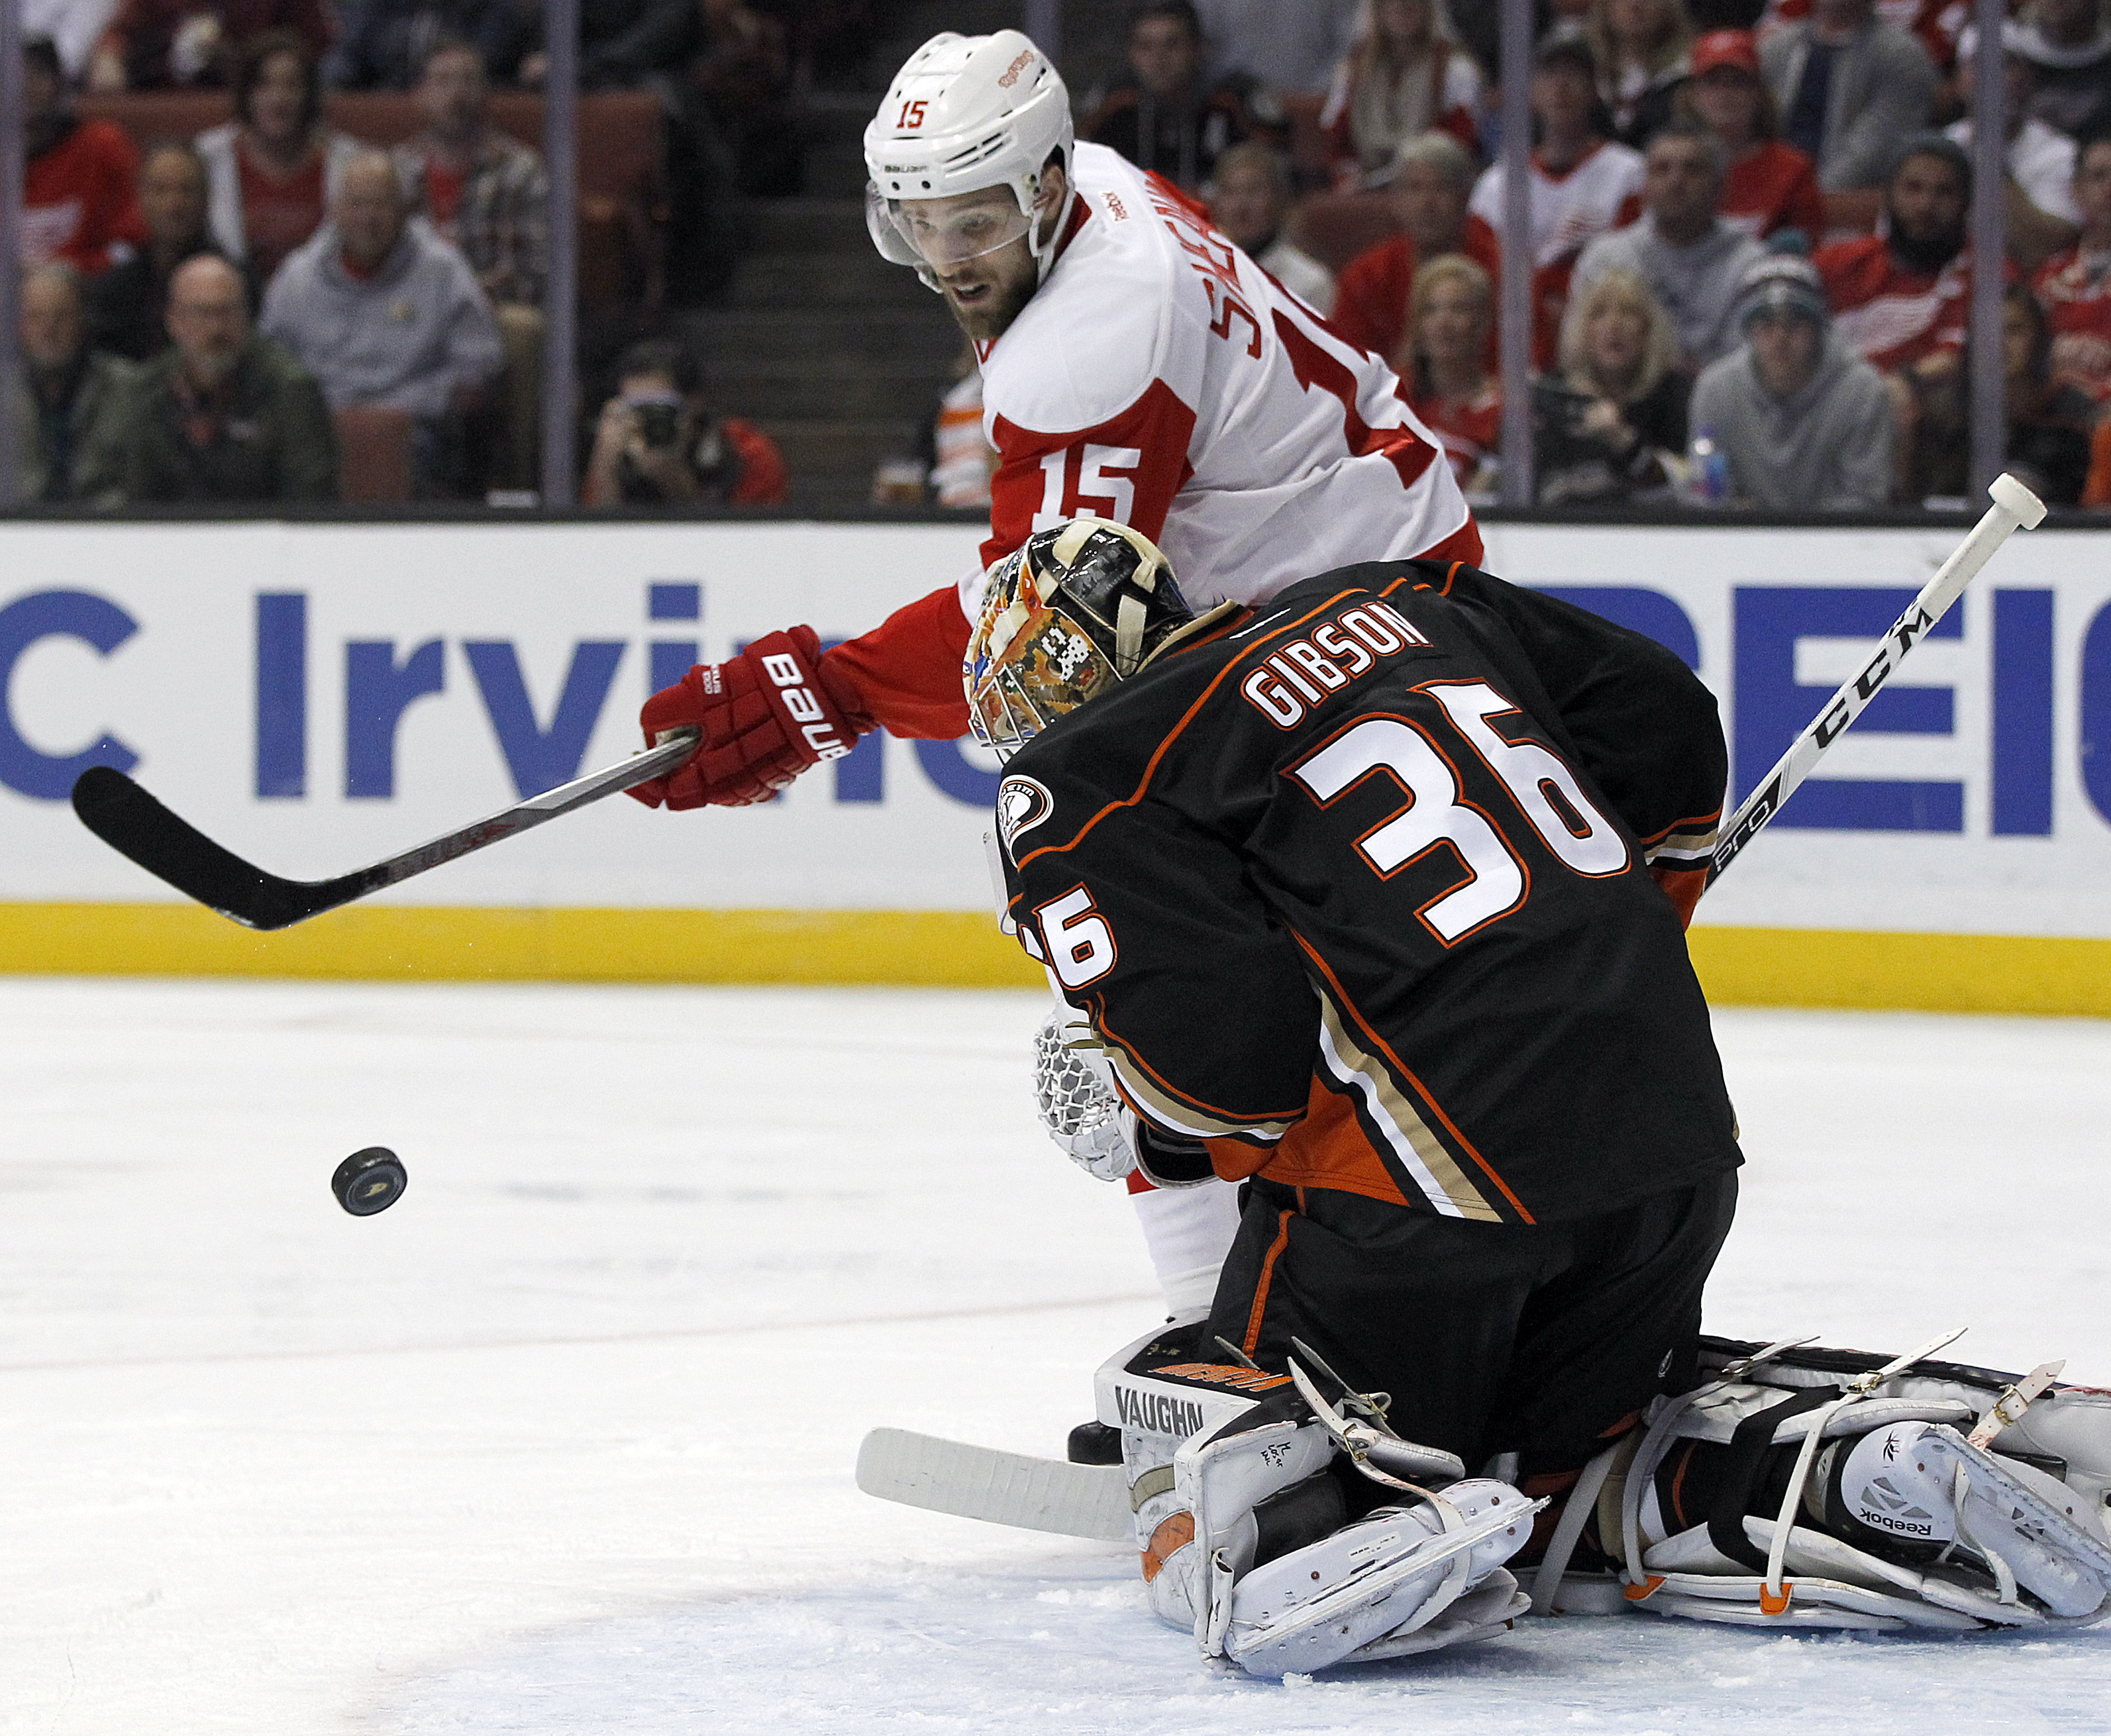 The puck bounces off Anaheim Ducks goalie John Gibson (36) as Detroit Red Wings center Riley Sheahan (15) looks for the rebound during the first period of an NHL hockey game in Anaheim, Calif., Sunday, Jan. 10, 2016. (AP Photo/Alex Gallardo)